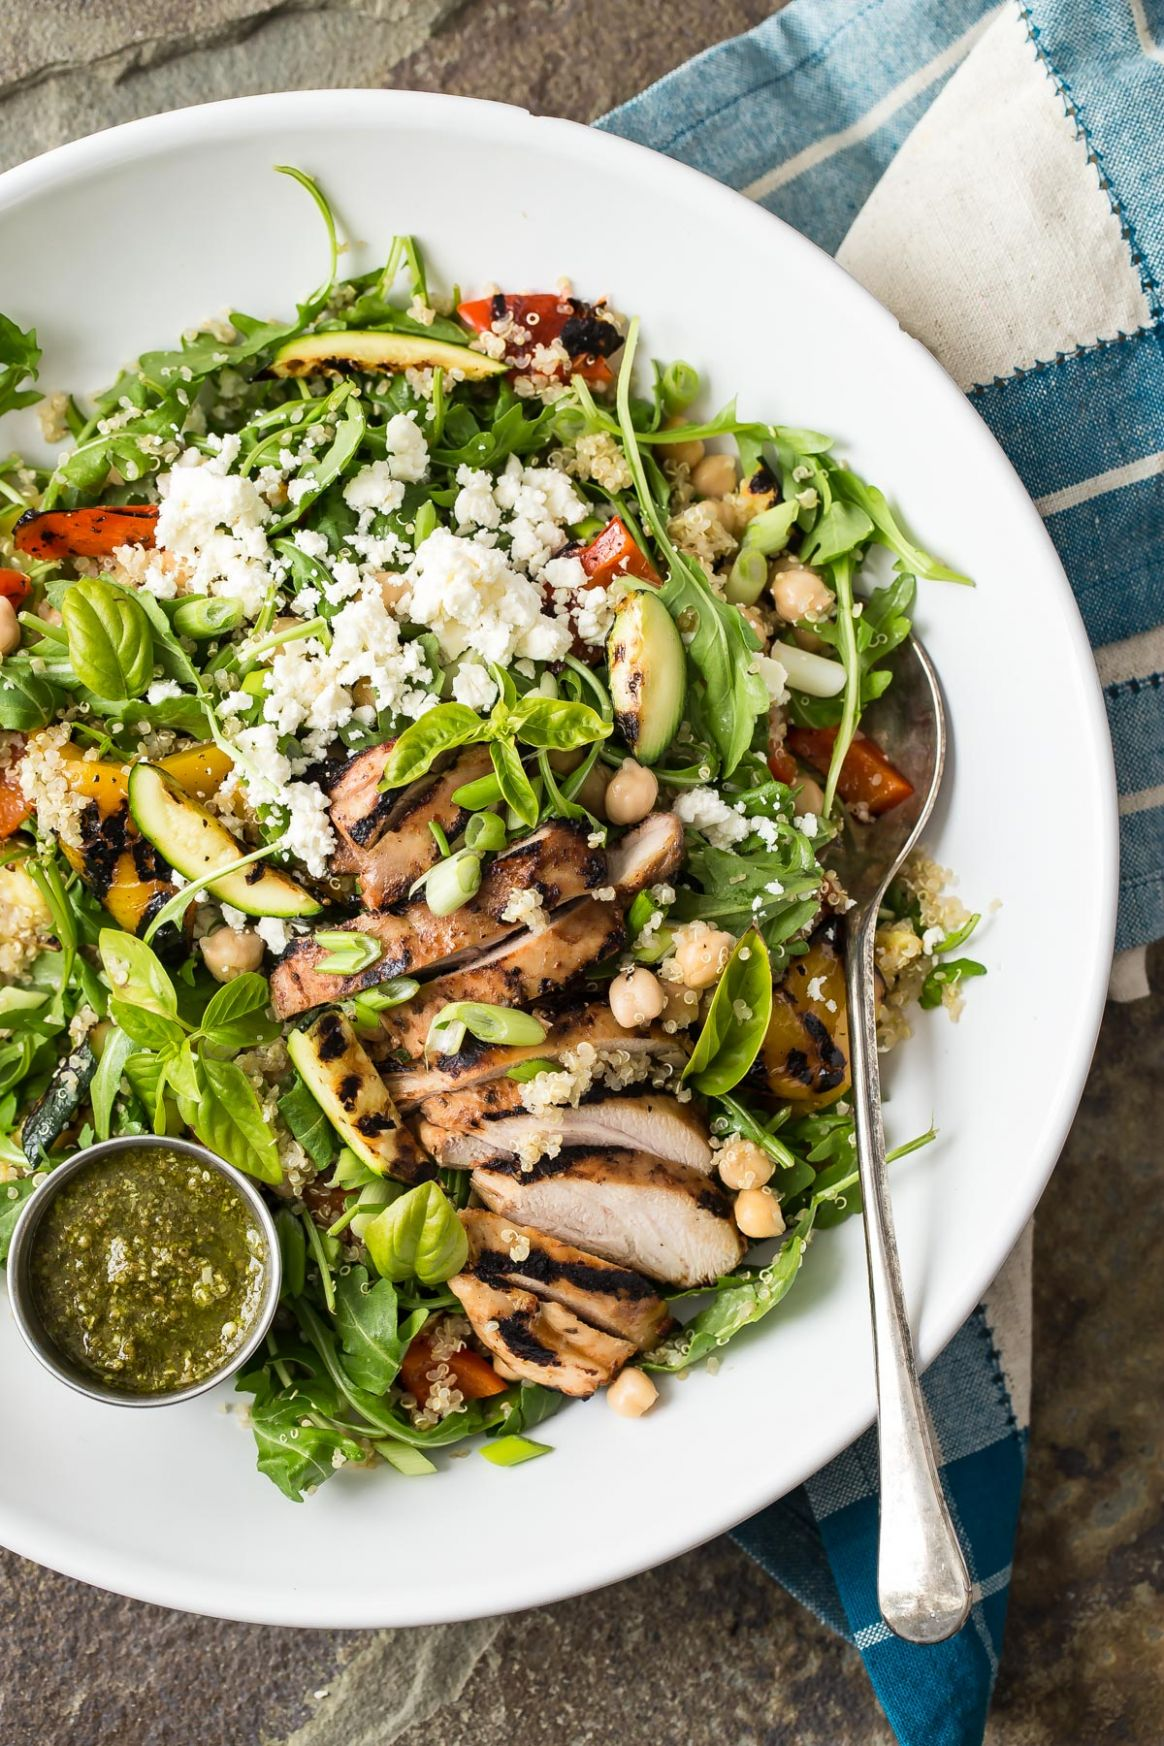 Quinoa Vegetable Salad with Grilled Chicken and Pesto - Salad Recipes With Quinoa And Chicken